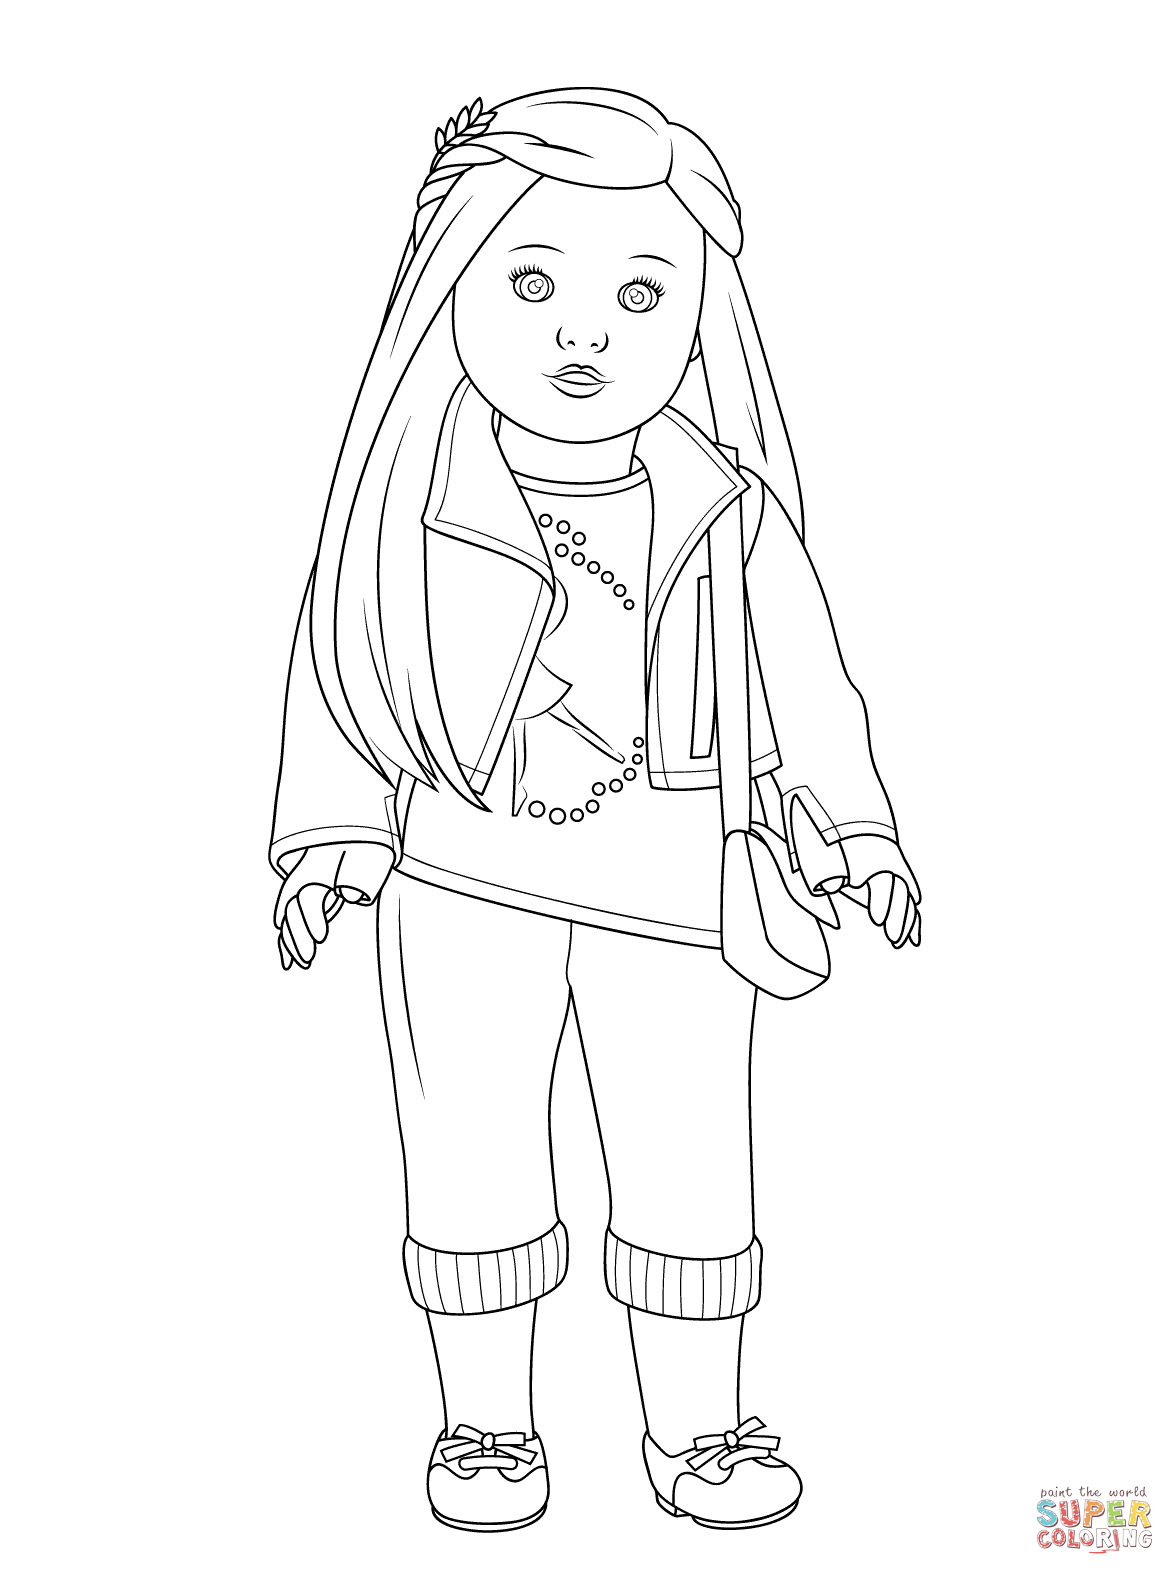 Kit kittredge coloring pages coloring home for American girl coloring pages kit